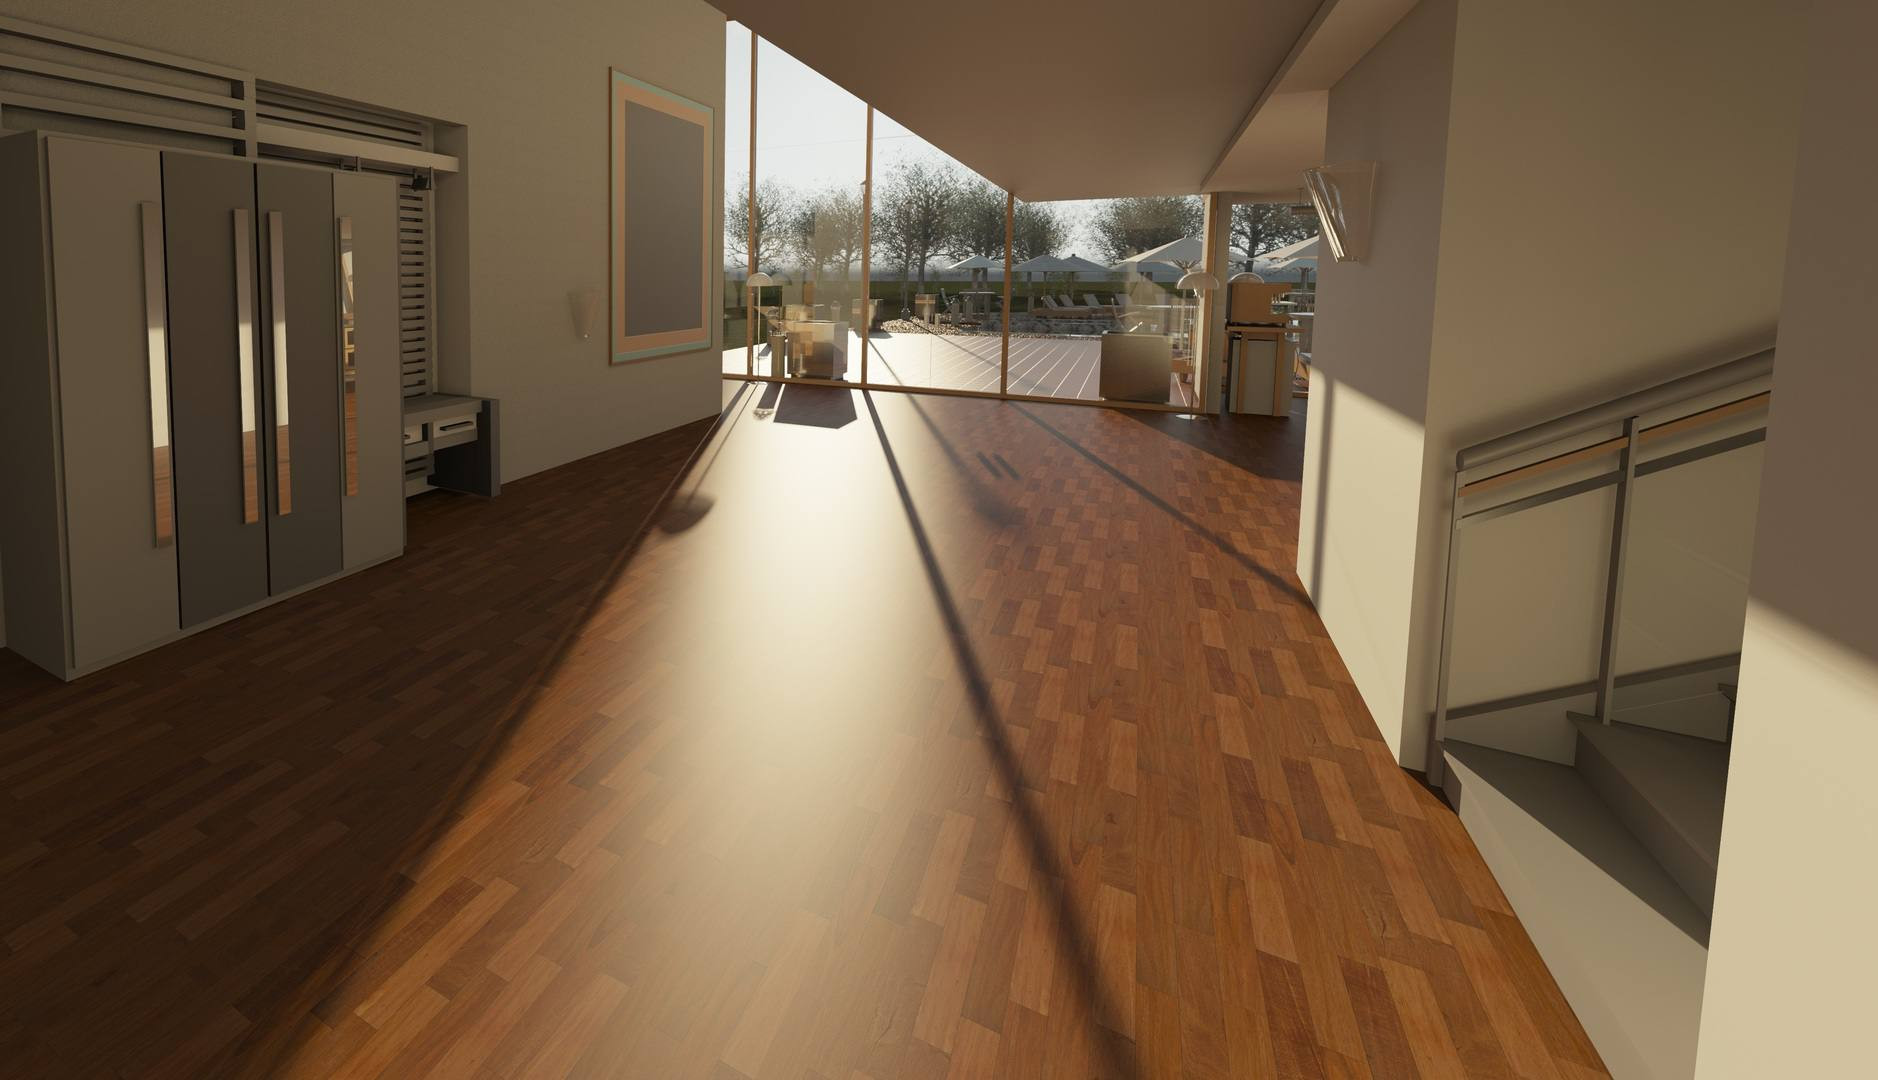 21 Fashionable Engineered Hardwood Flooring Installation tools 2021 free download engineered hardwood flooring installation tools of common flooring types currently used in renovation and building for architecture wood house floor interior window 917178 pxhere com 5ba27a2